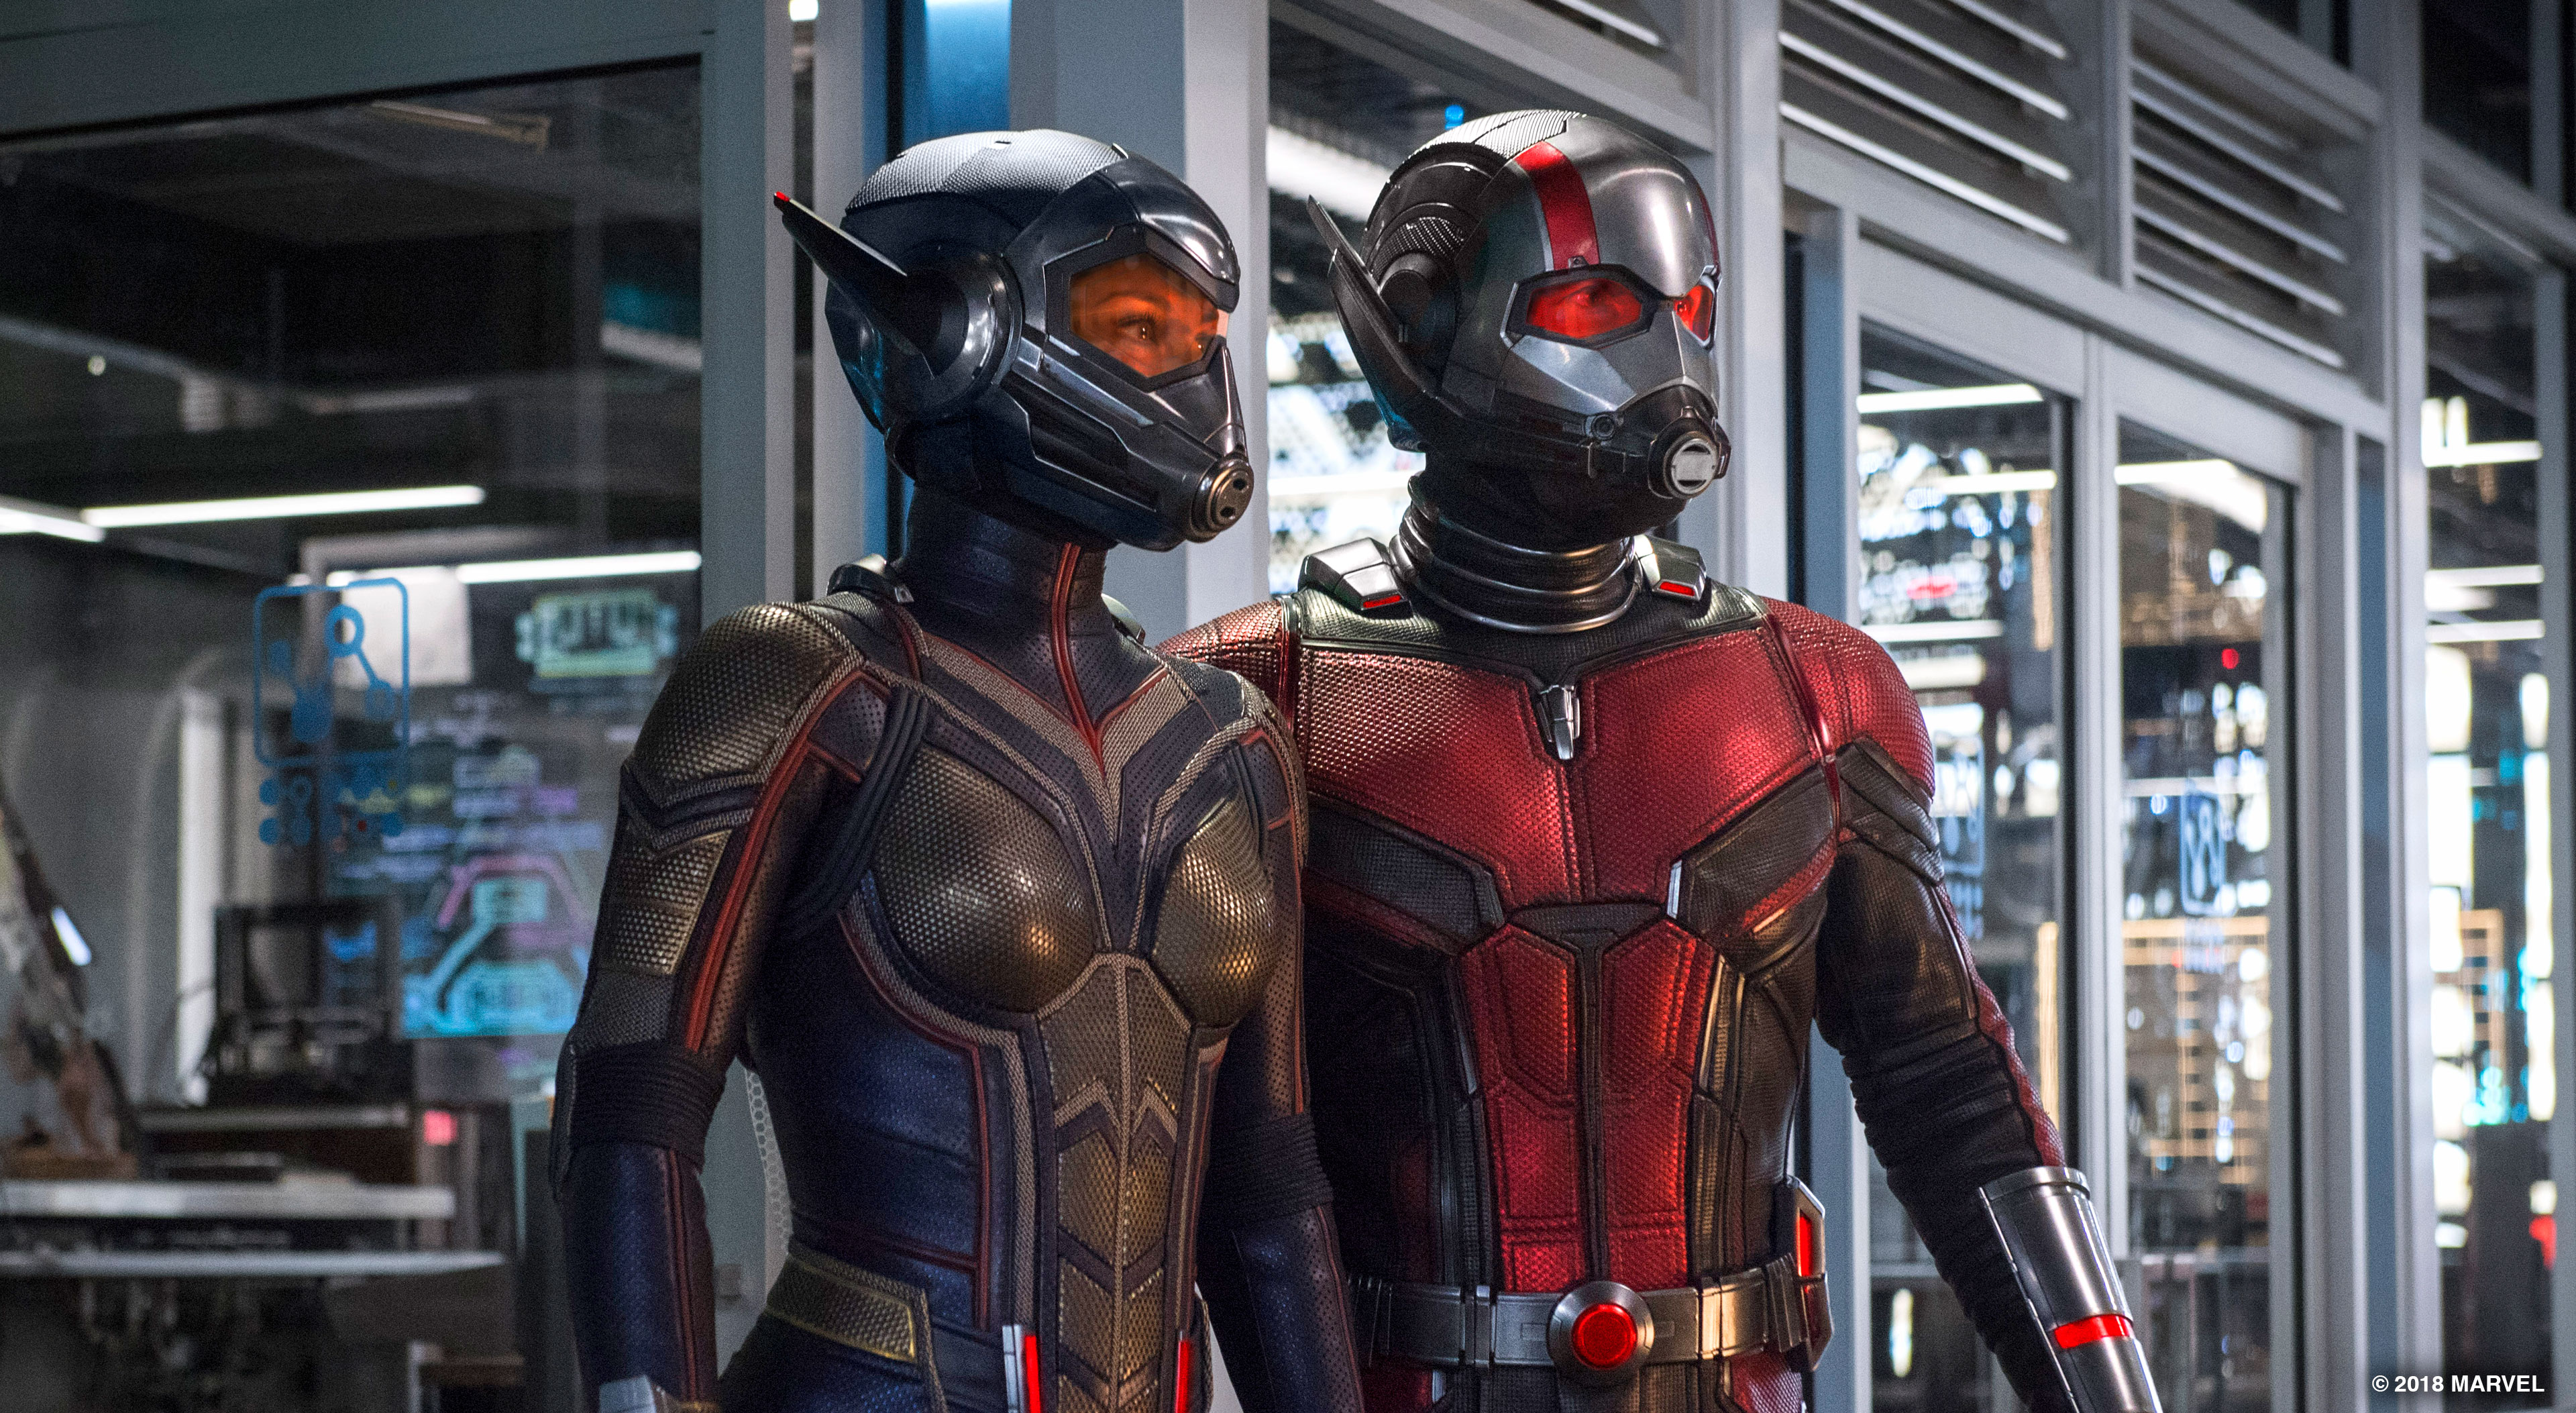 Ant-Man-and-the-Wasp_PS_Comcast_Iconic-Image_3840x2106